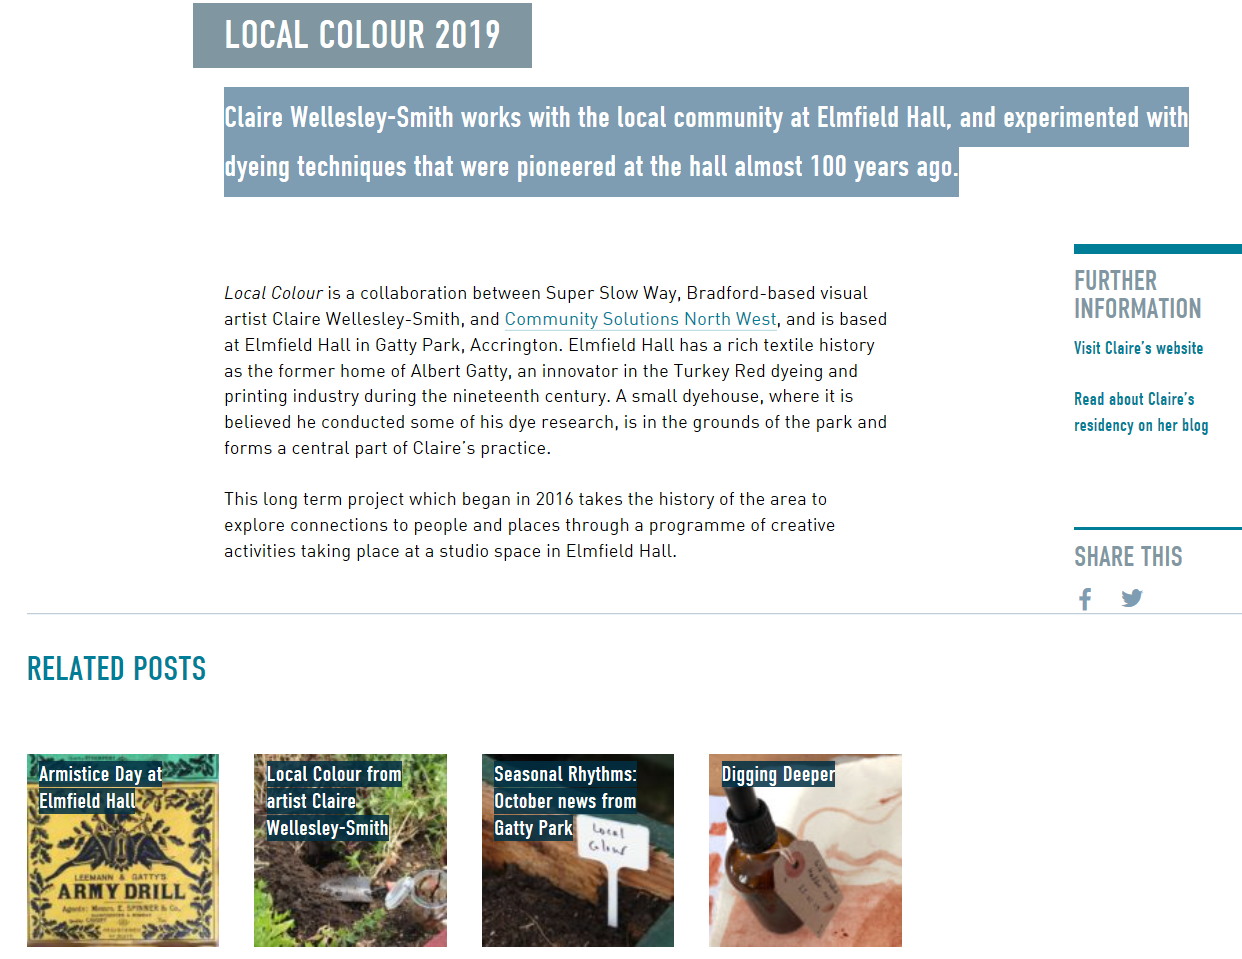 Local Colour landing page on Super Slow Way's website.